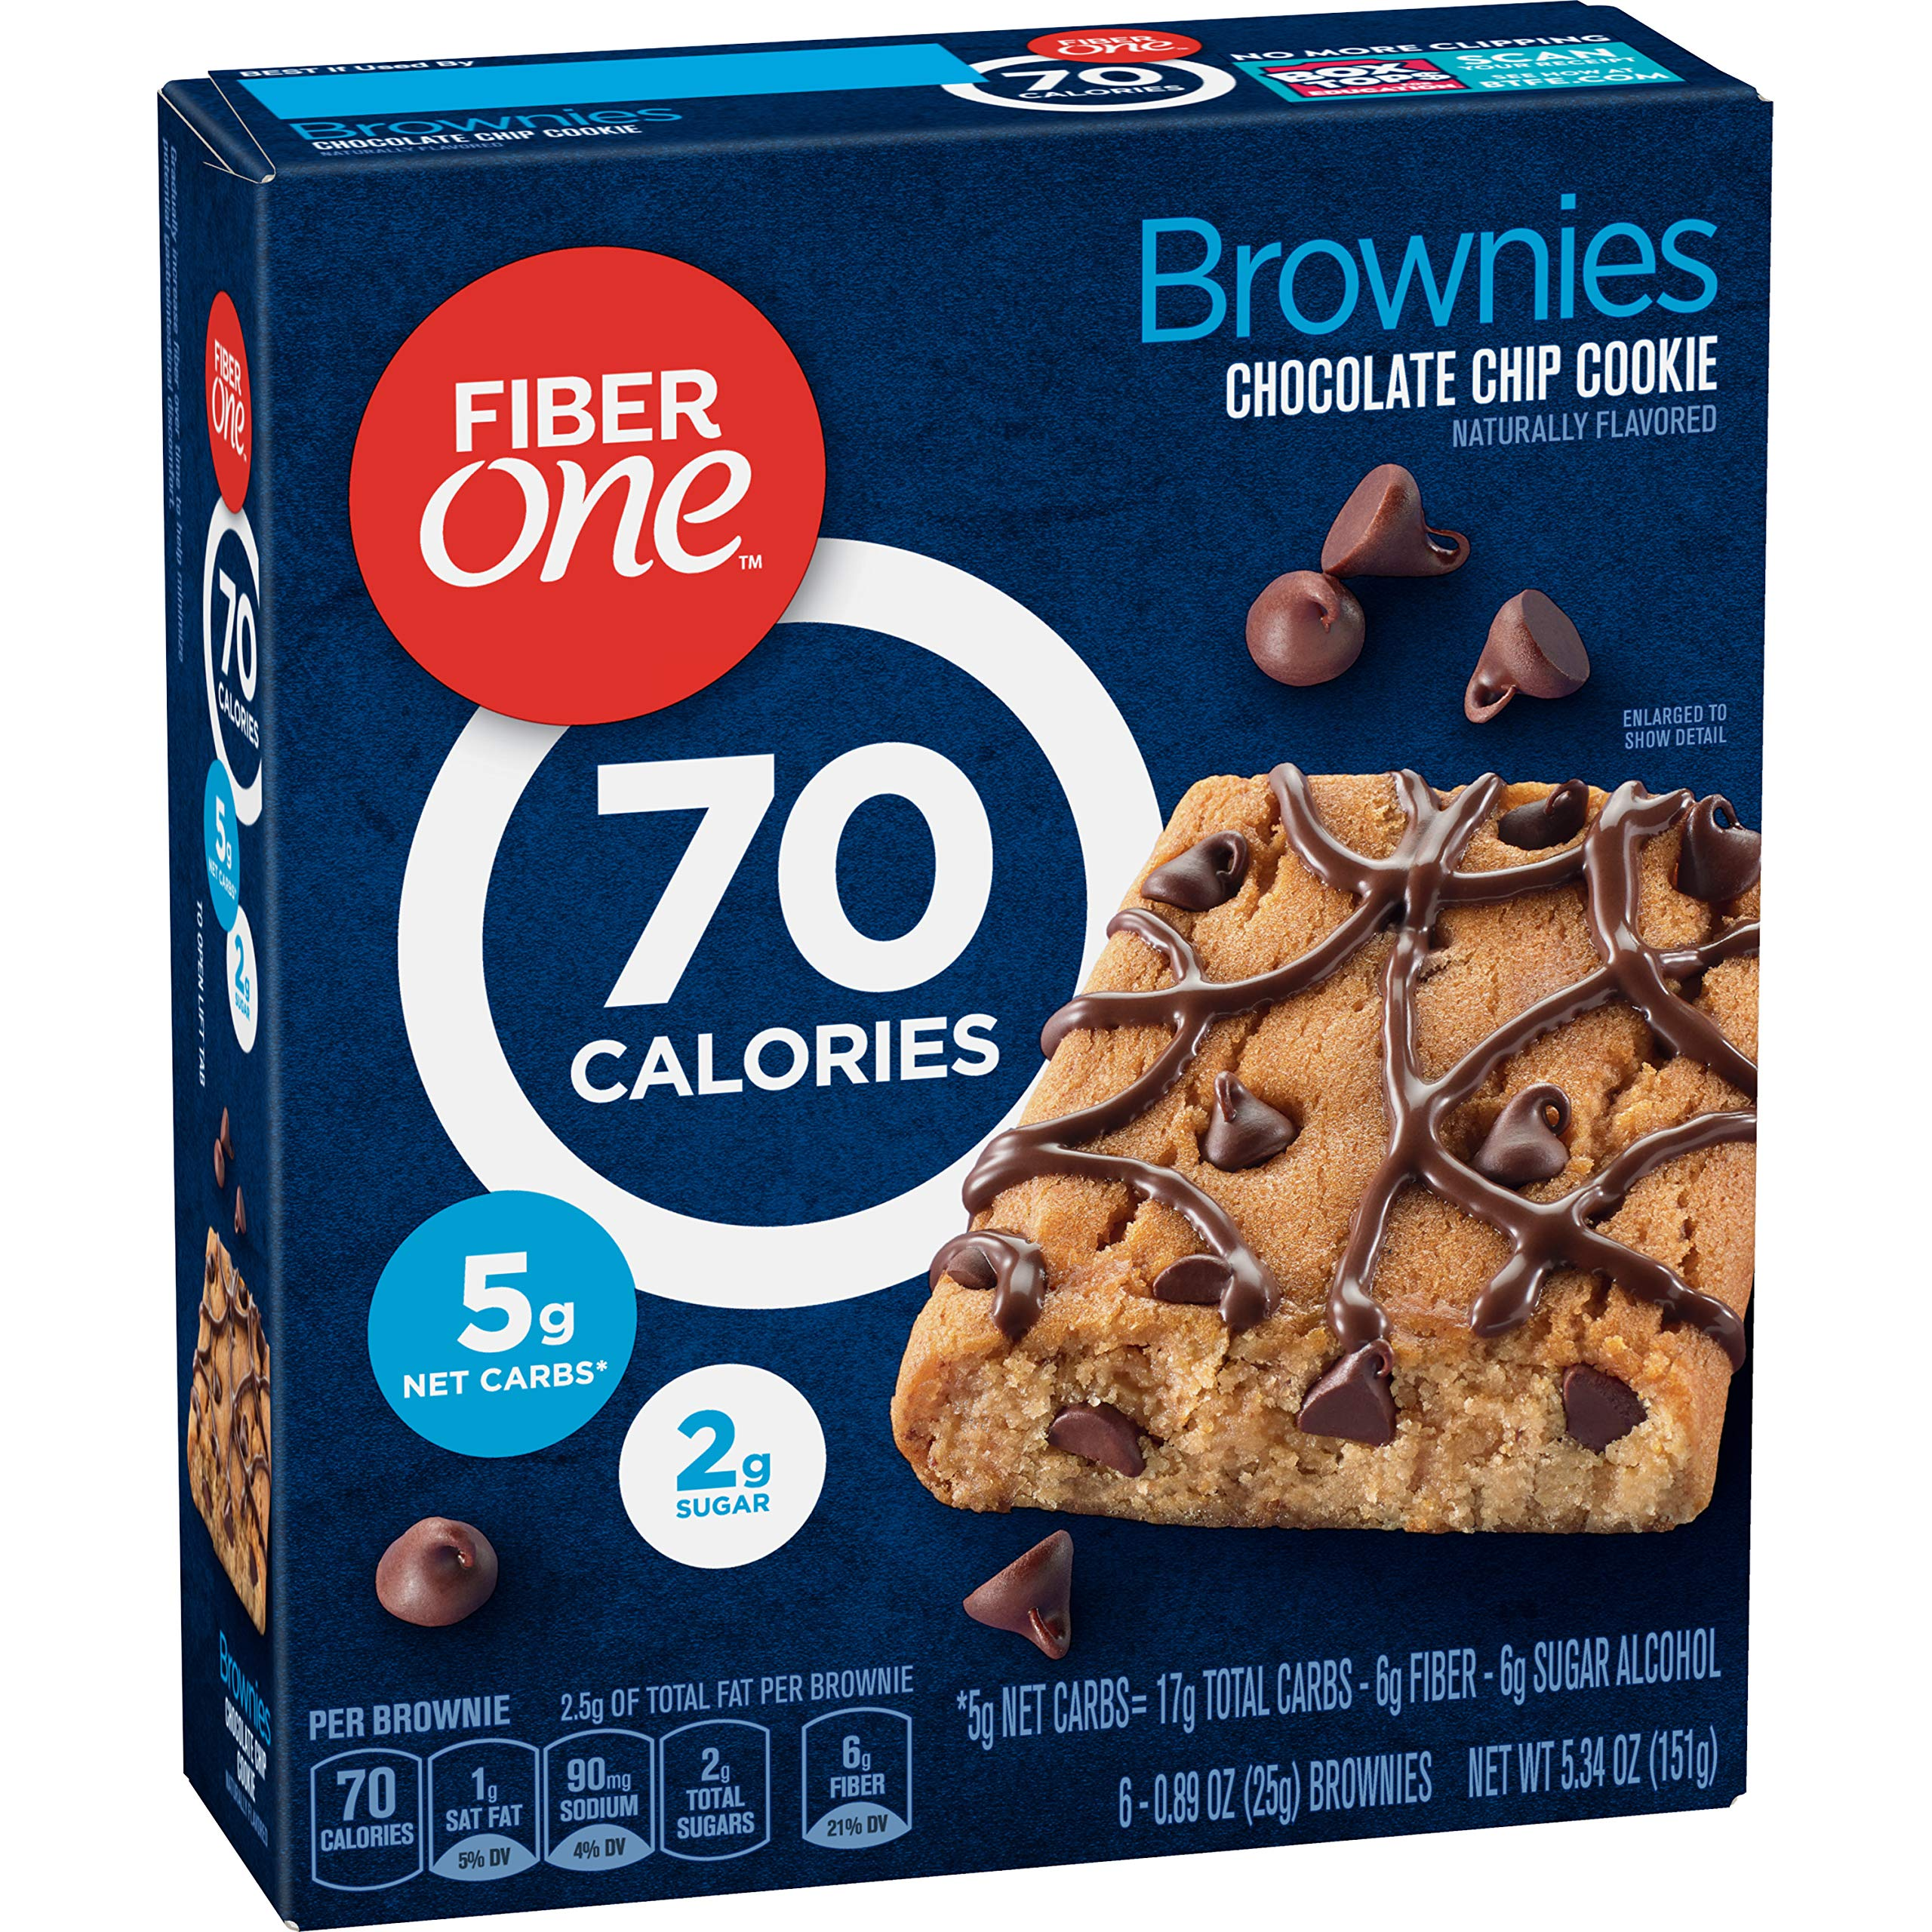 Fiber One Brownies, 70 Calories, 5 Net Carbs, Snacks, Chocolate Chip, 6ct